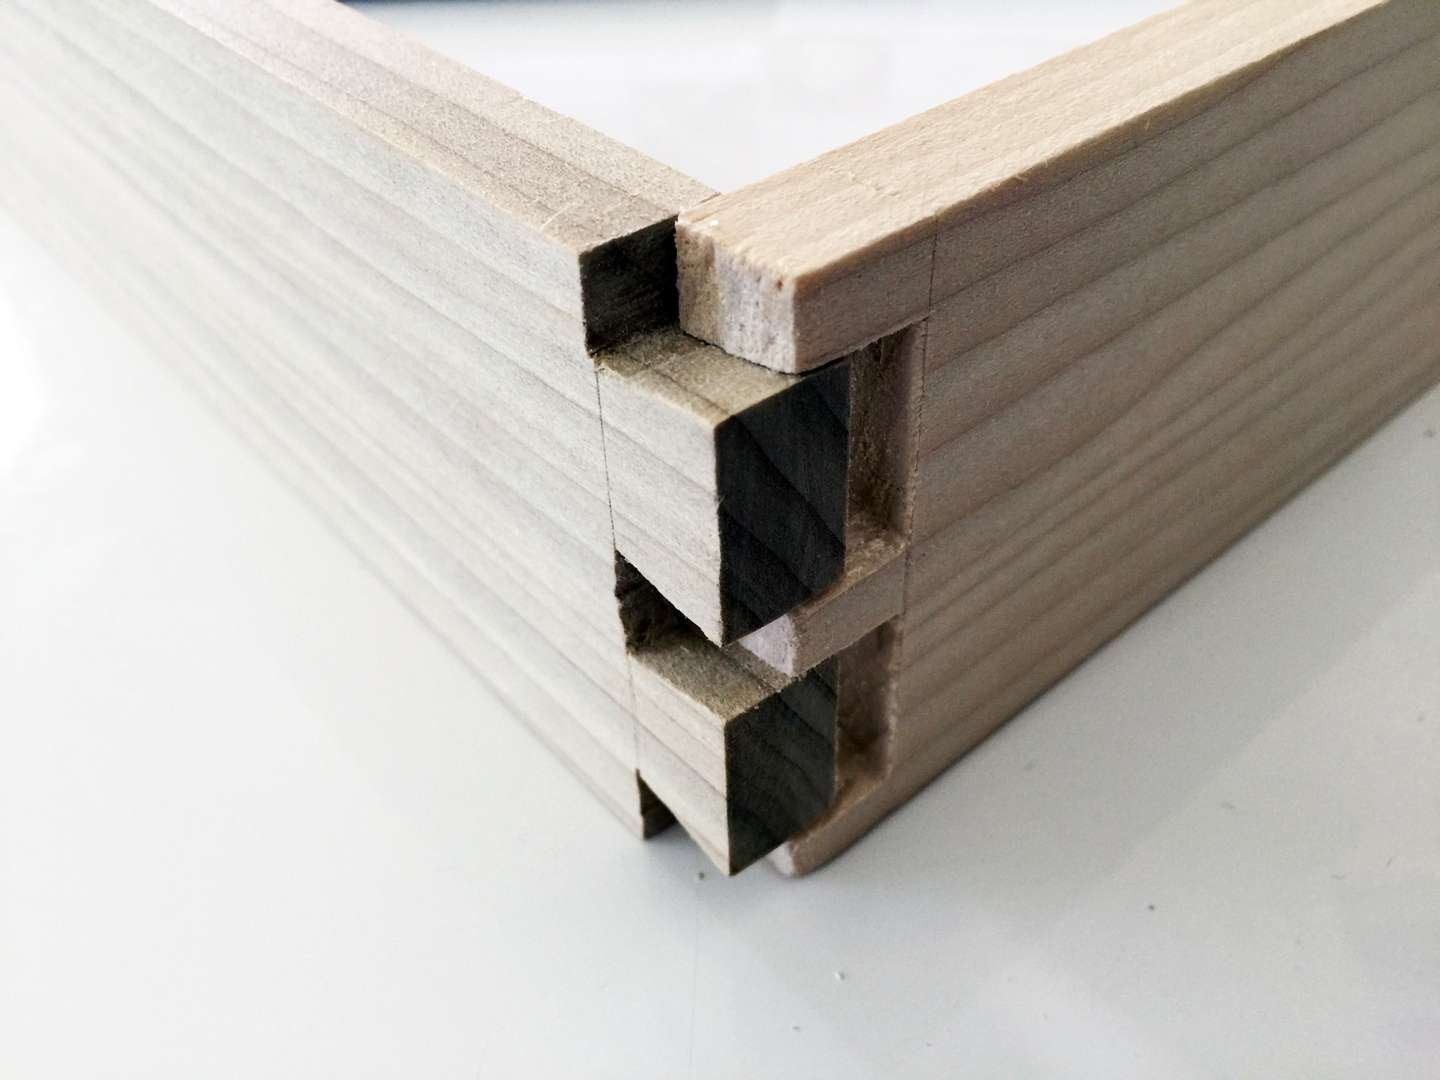 How To Make A Dovetail Joint With Traditional Woodworking